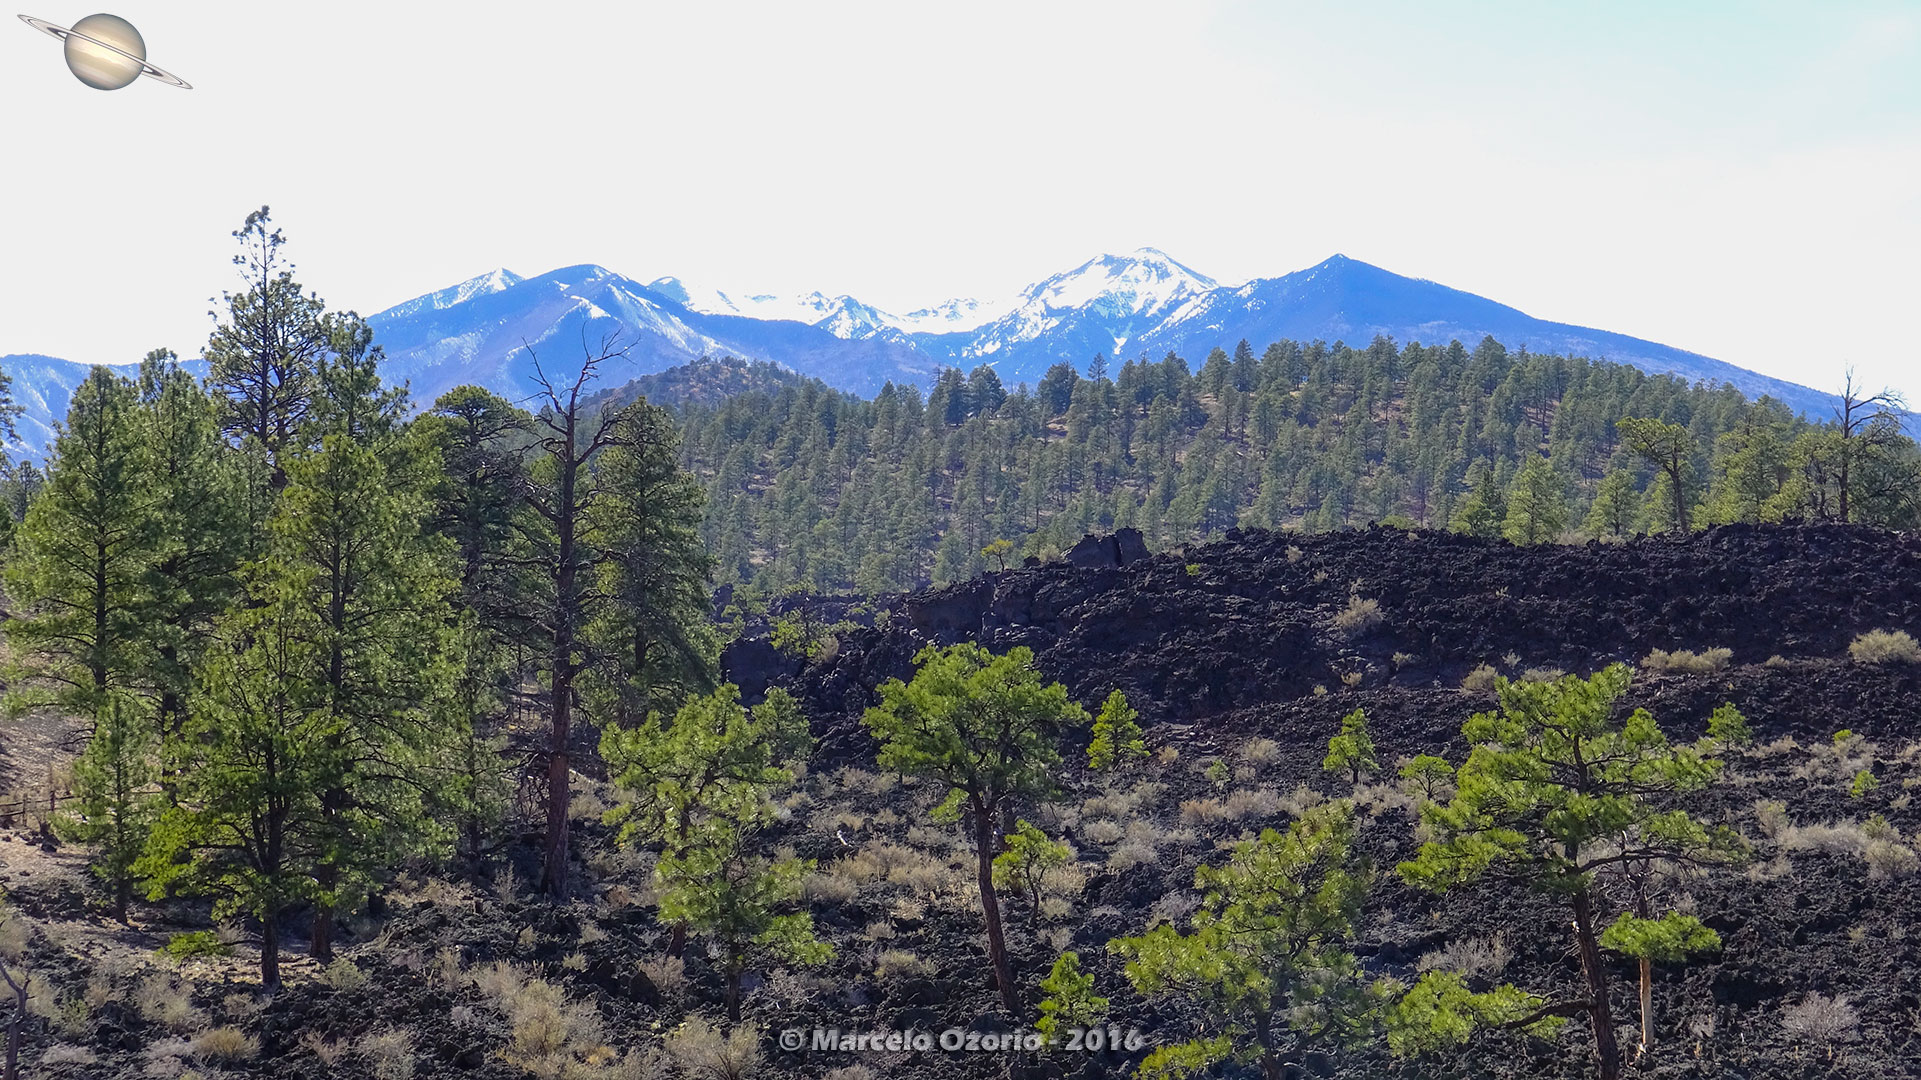 Sunset Crater Volcano Arizona 30 - Frozen Lava Fields at Sunset Crater Volcano - Arizona